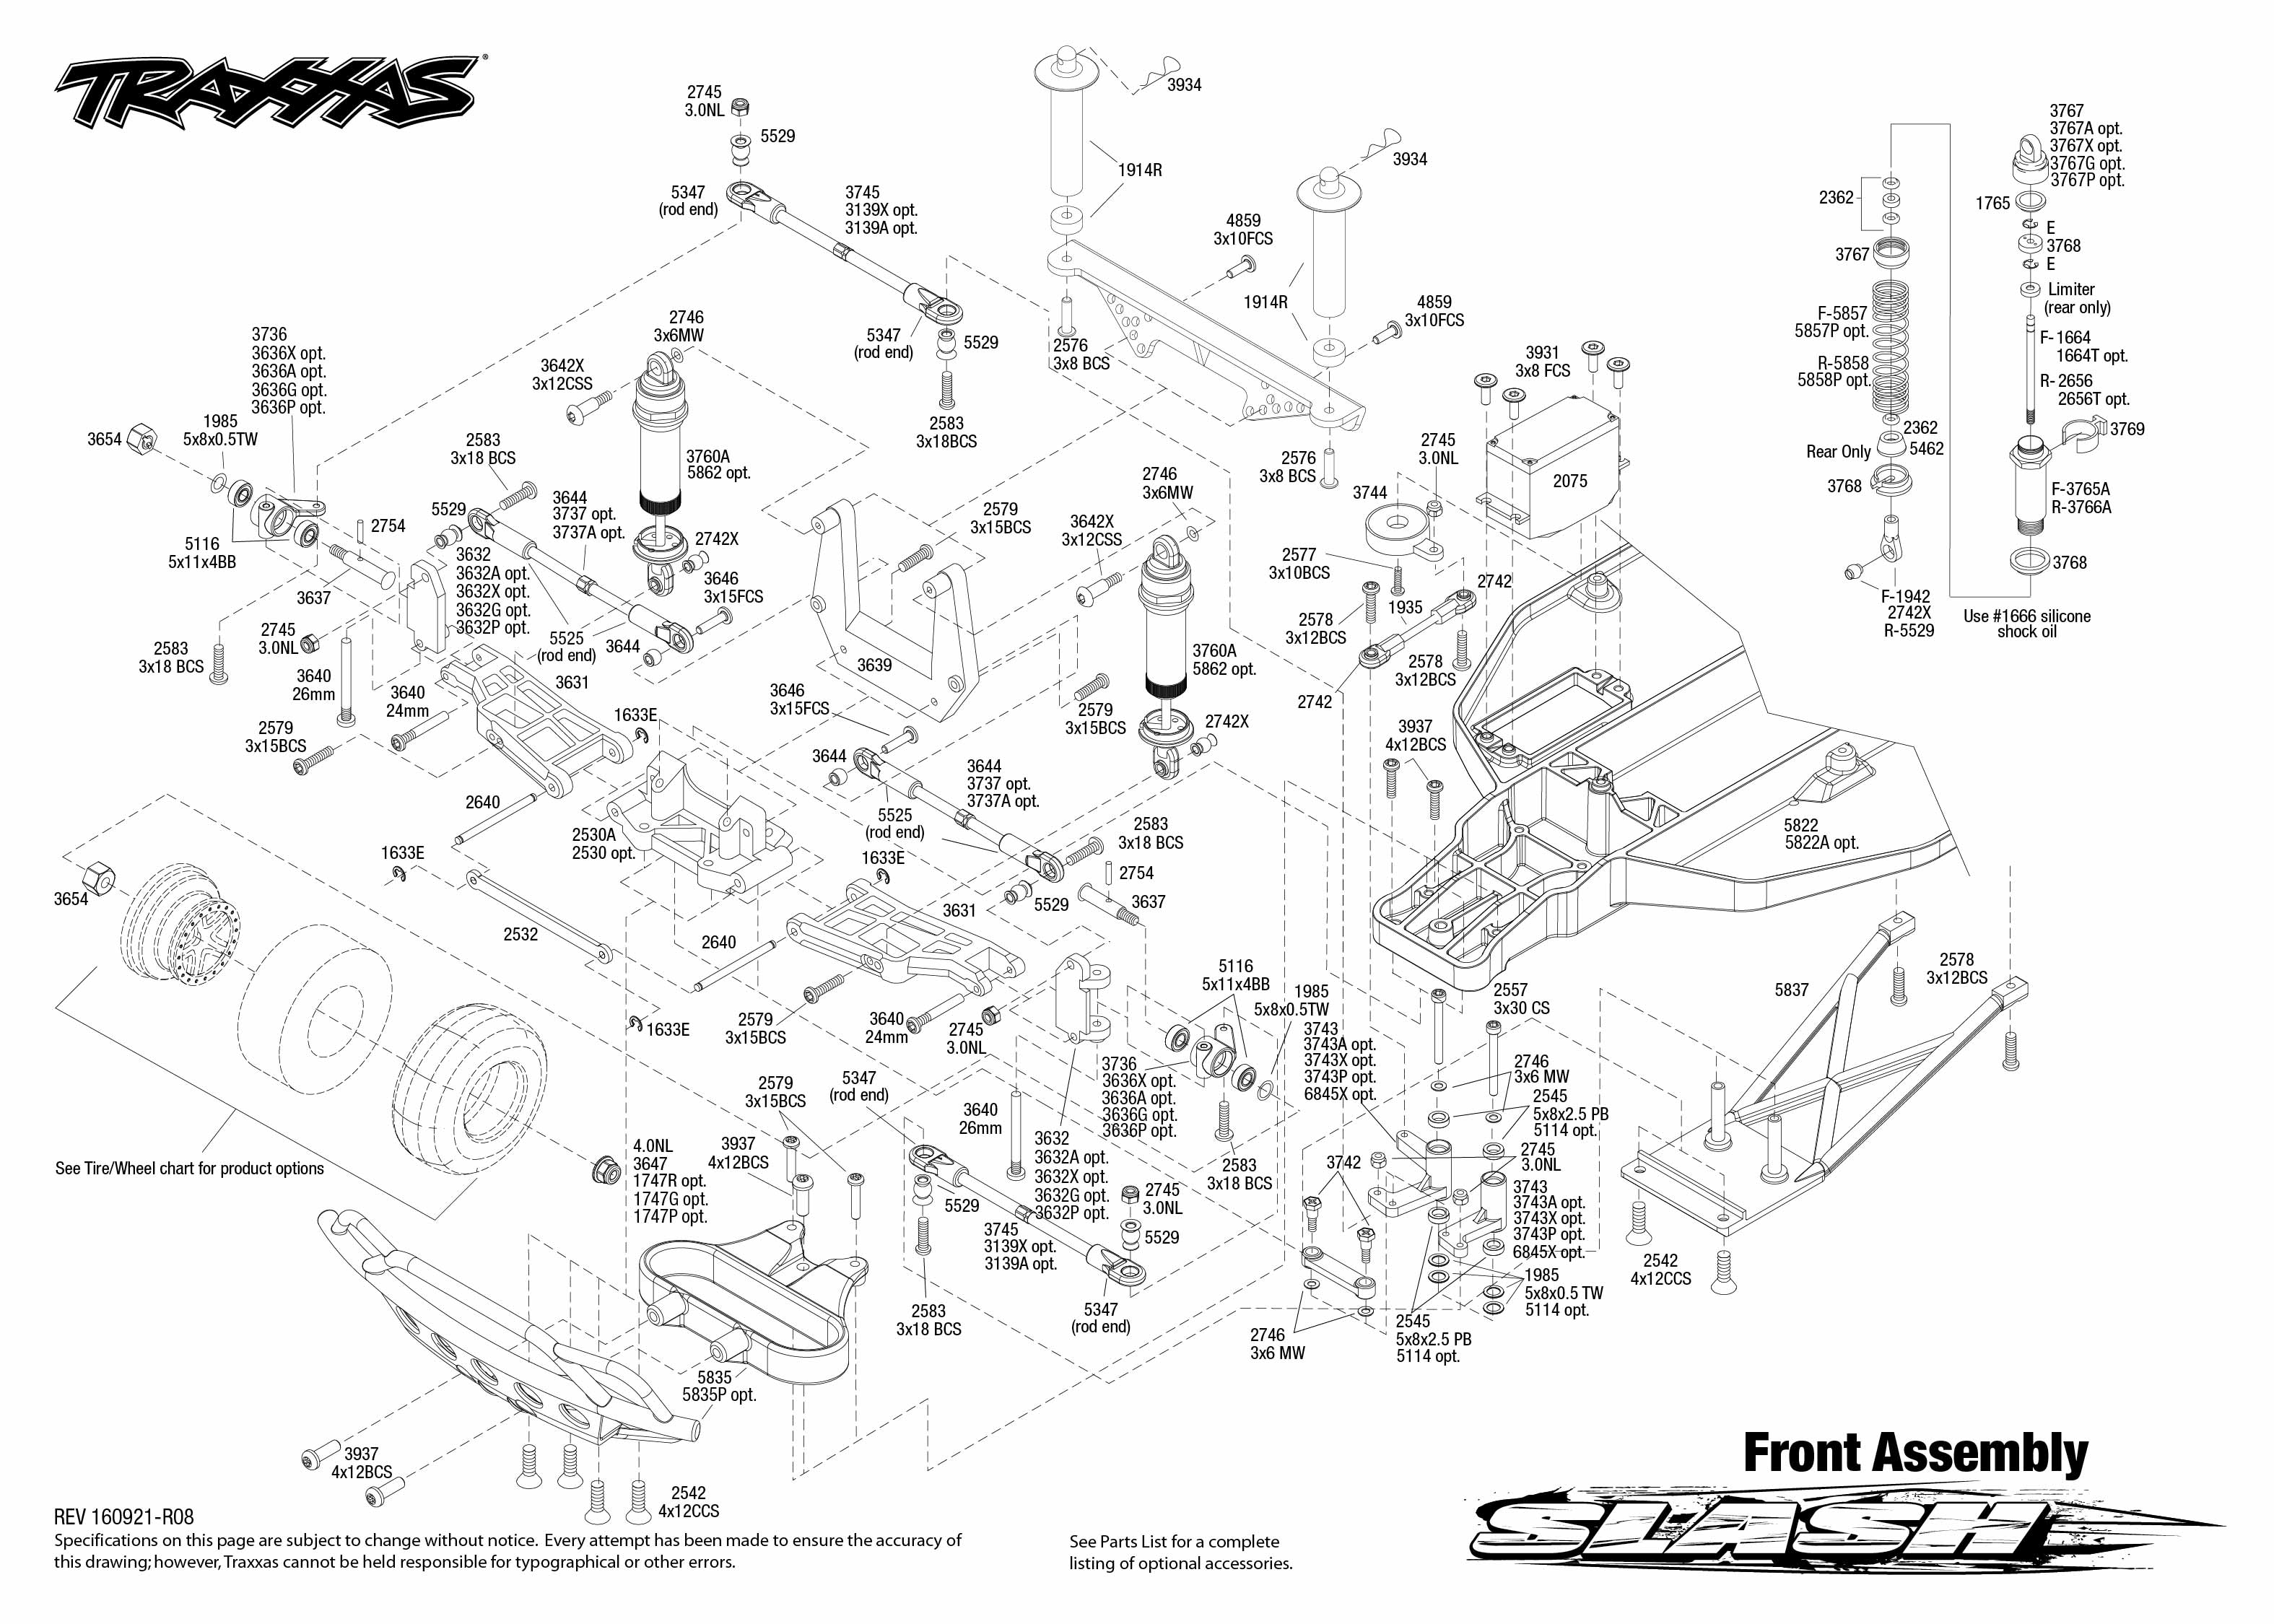 Traxxas 1 10 Scale Stampede Vxl 2wd Monster Truck 3607l Parts Diagram Front Worksheet And Wiring Is Anything Wrong With My Steering Rh Forums Com Rustler 4x4